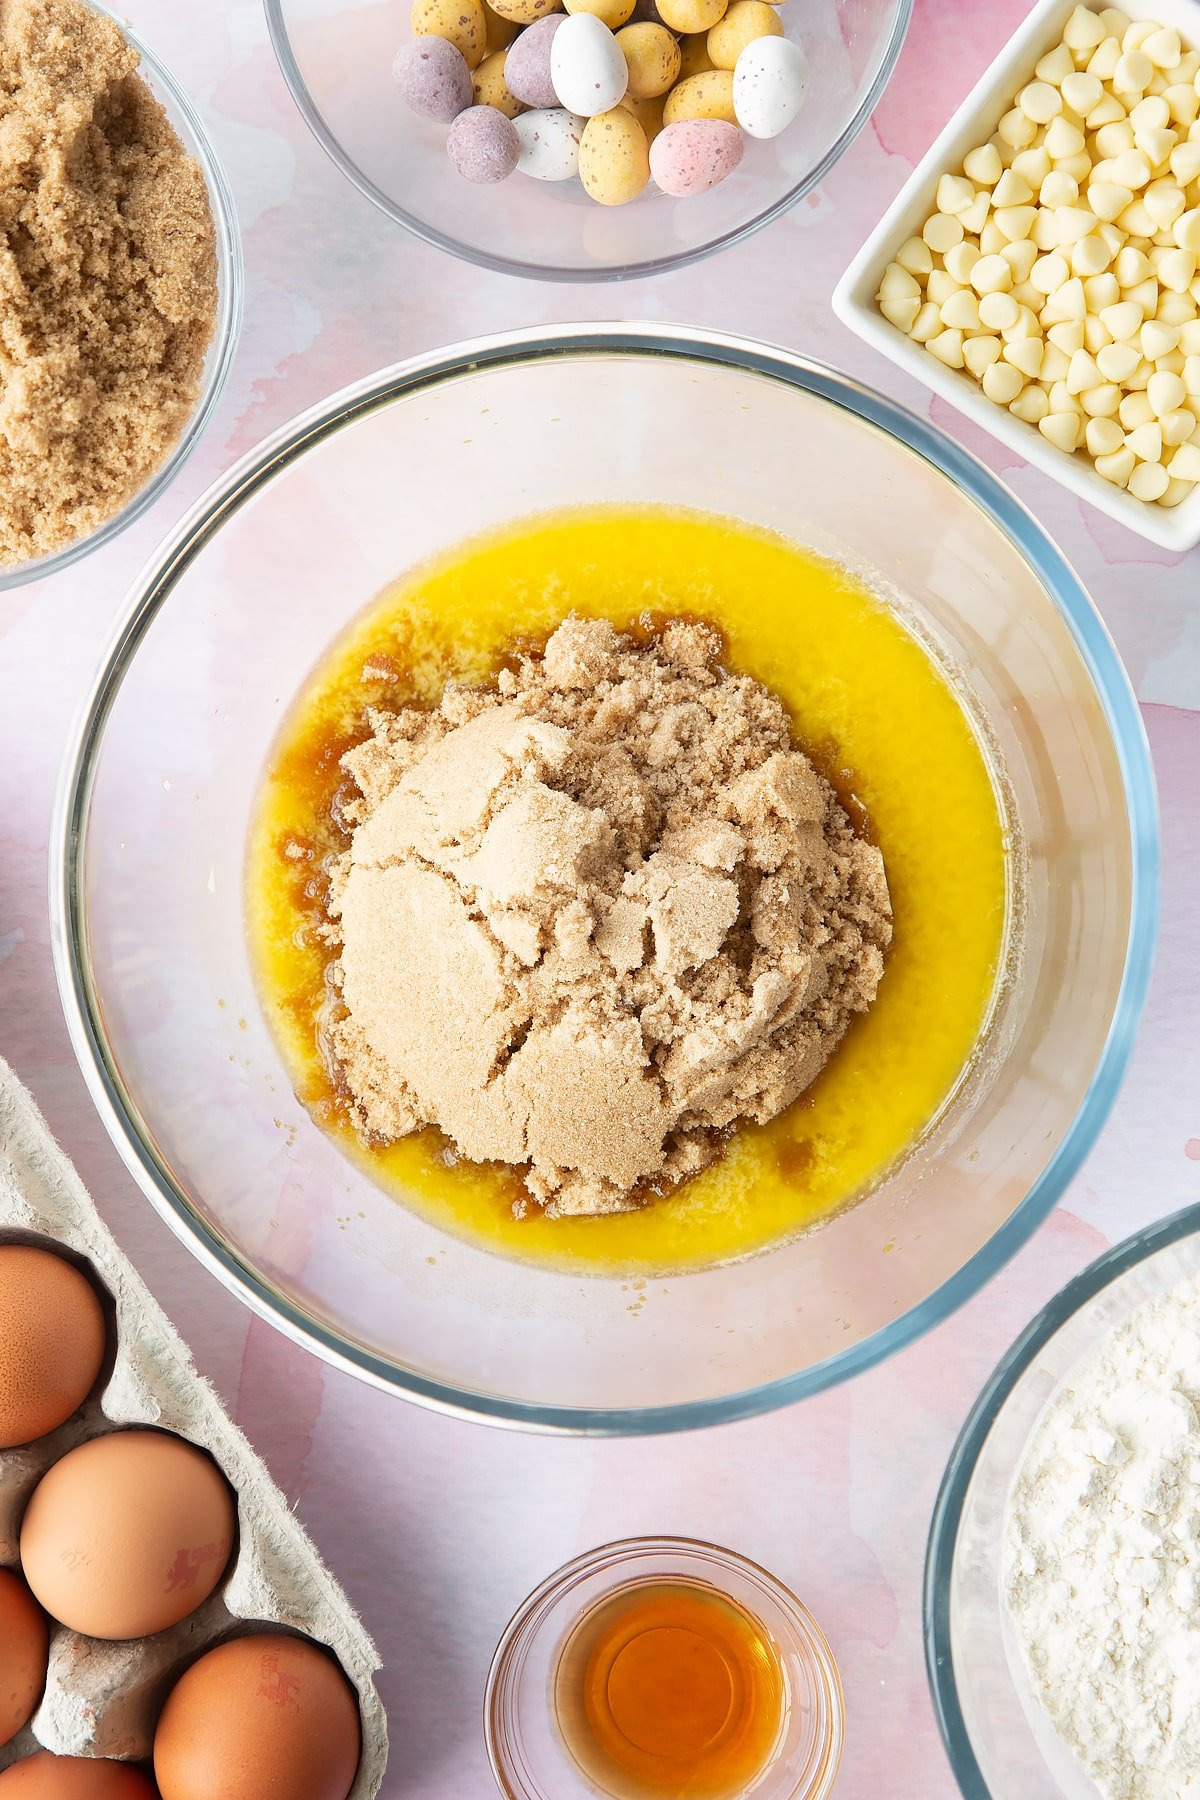 Melted butter and sugar in a bowl. Ingredients to make Mini Egg blondies surround the bowl.